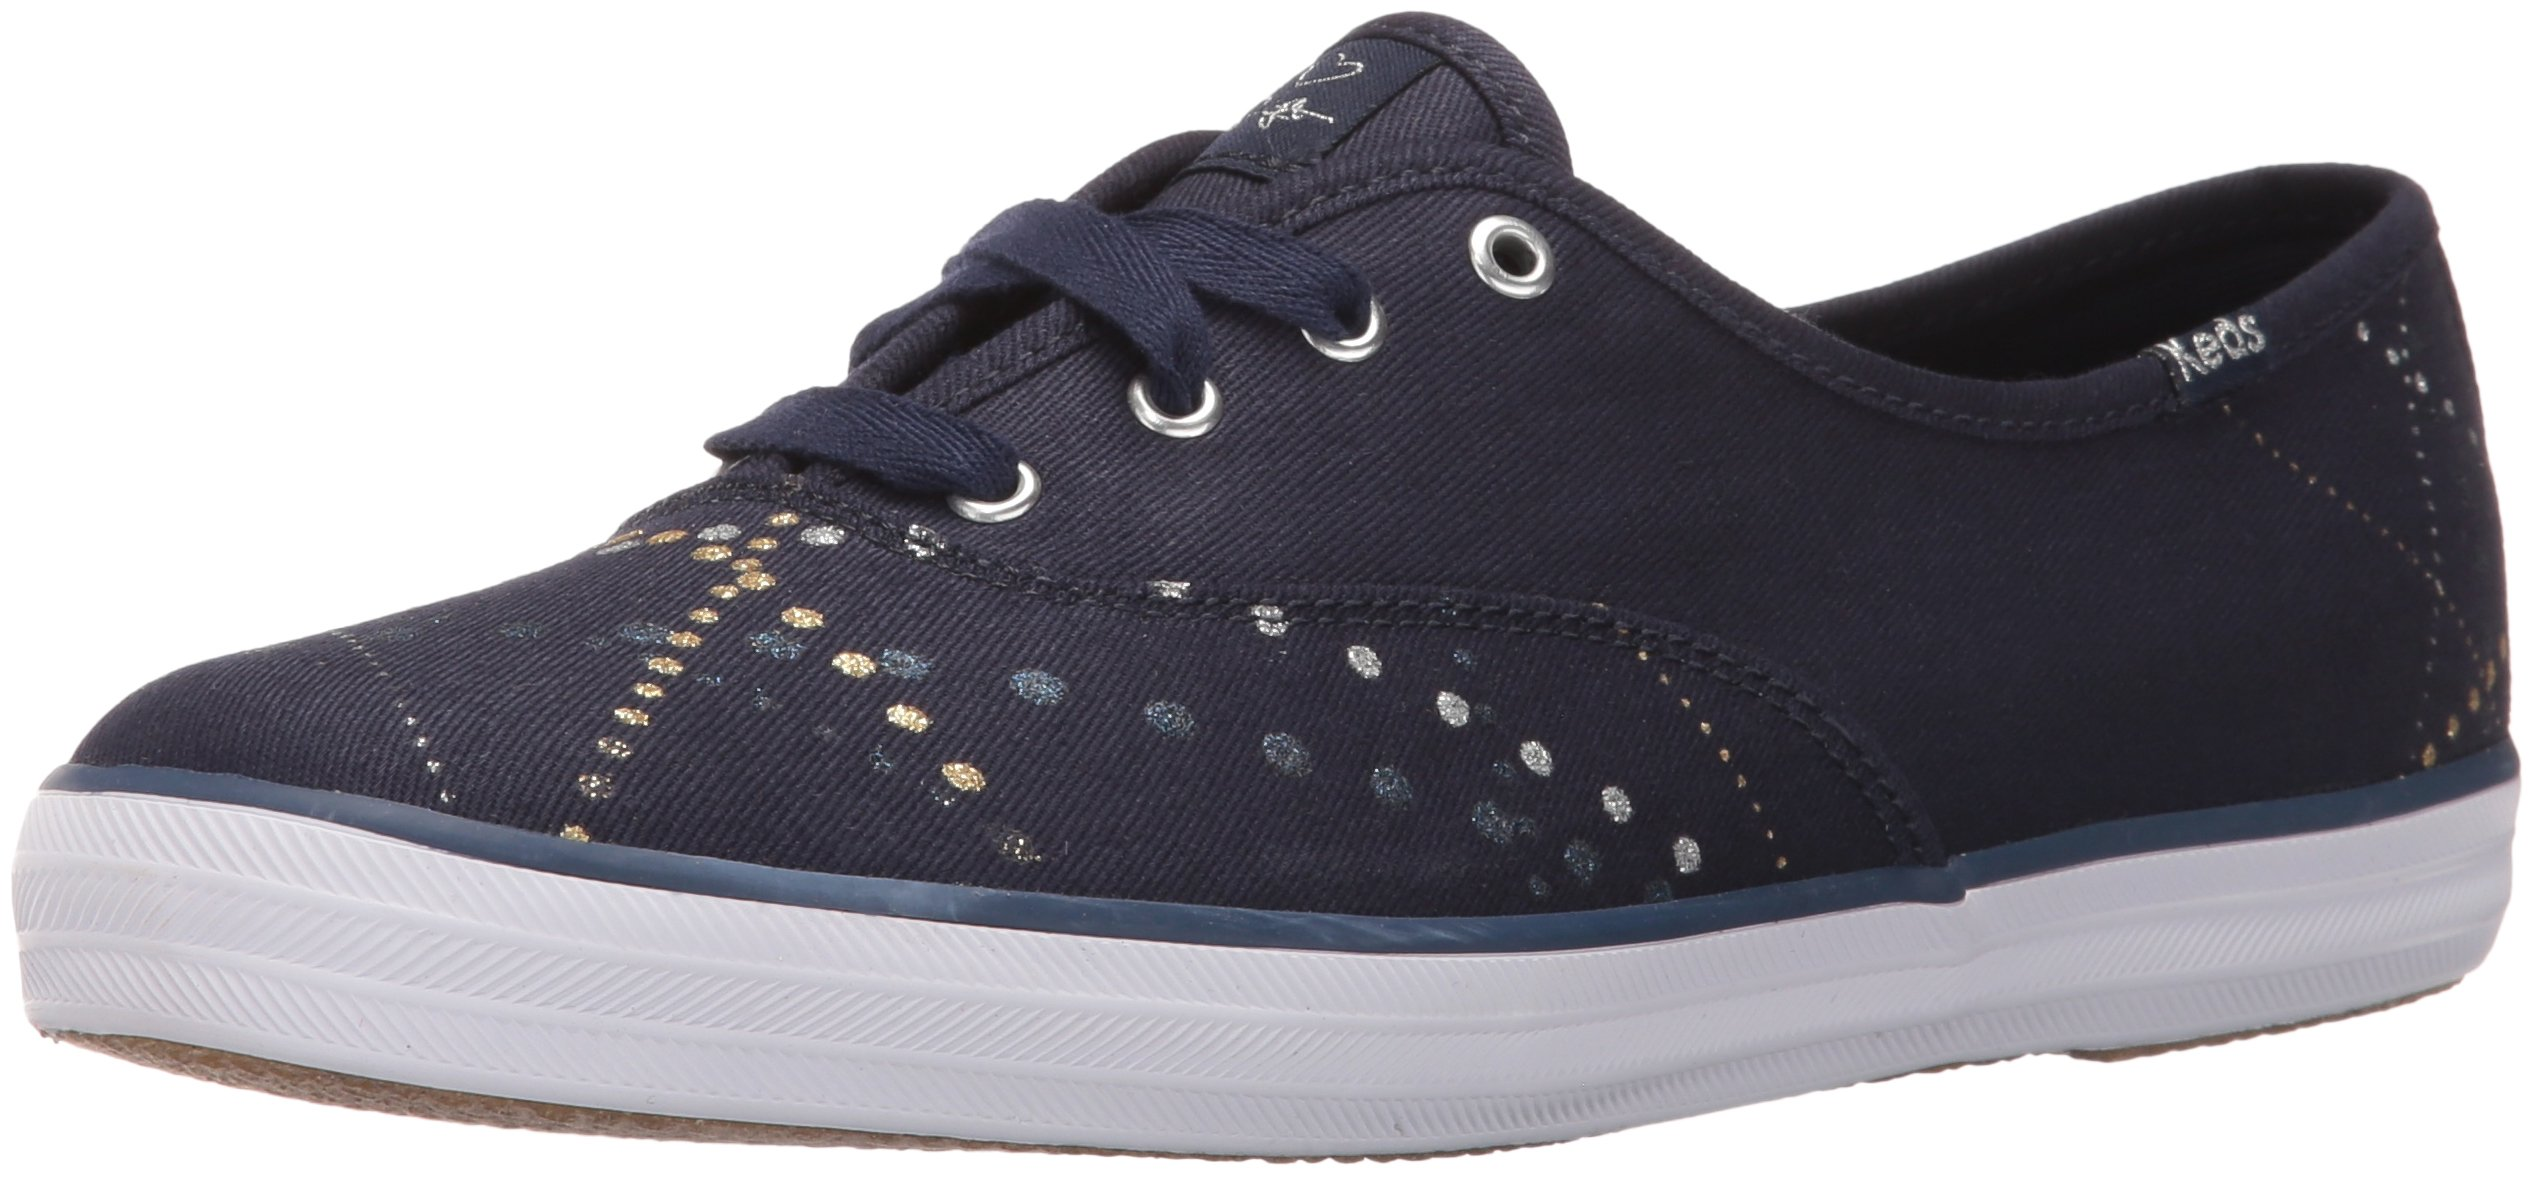 Keds Women's Taylor Swift Lazer Lights Fashion Sneaker, Navy, 10 M US